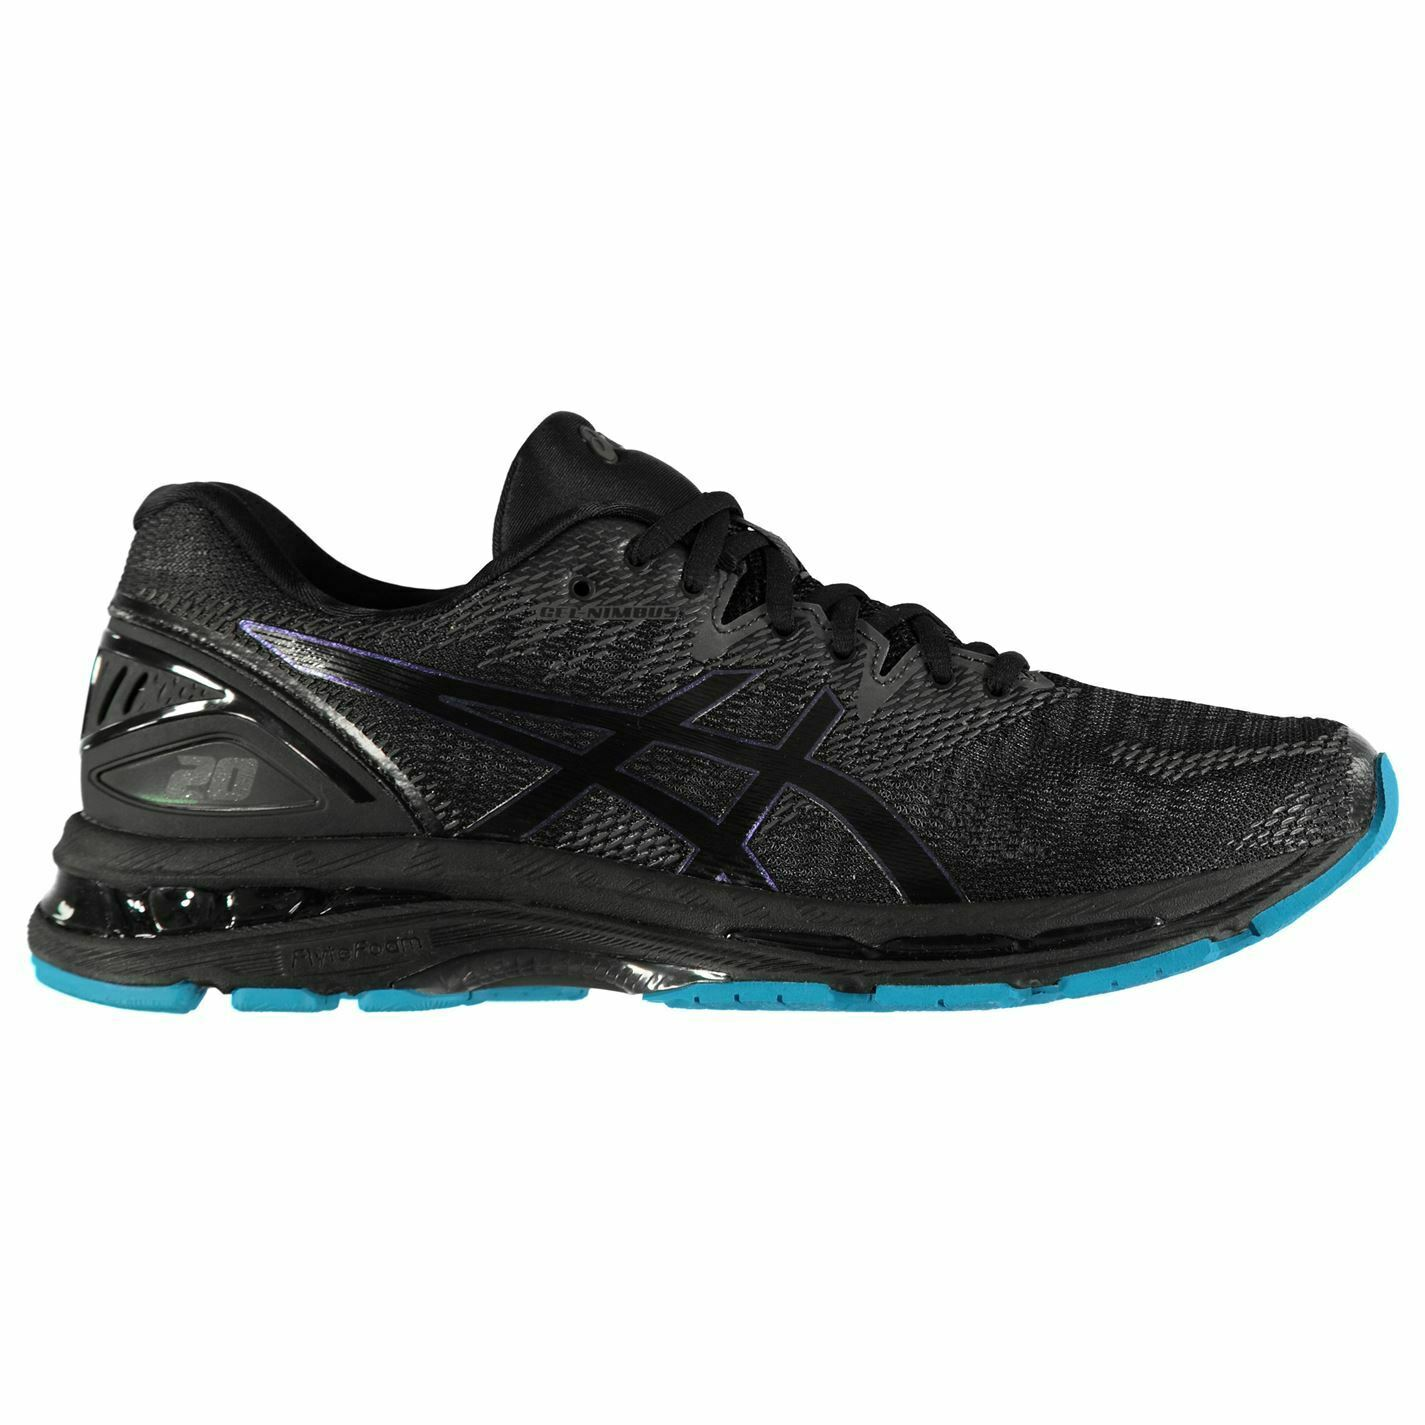 Asics Mens Gel Nimbus 20 Running shoes Road Lace Up Breathable Cushioned Ankle